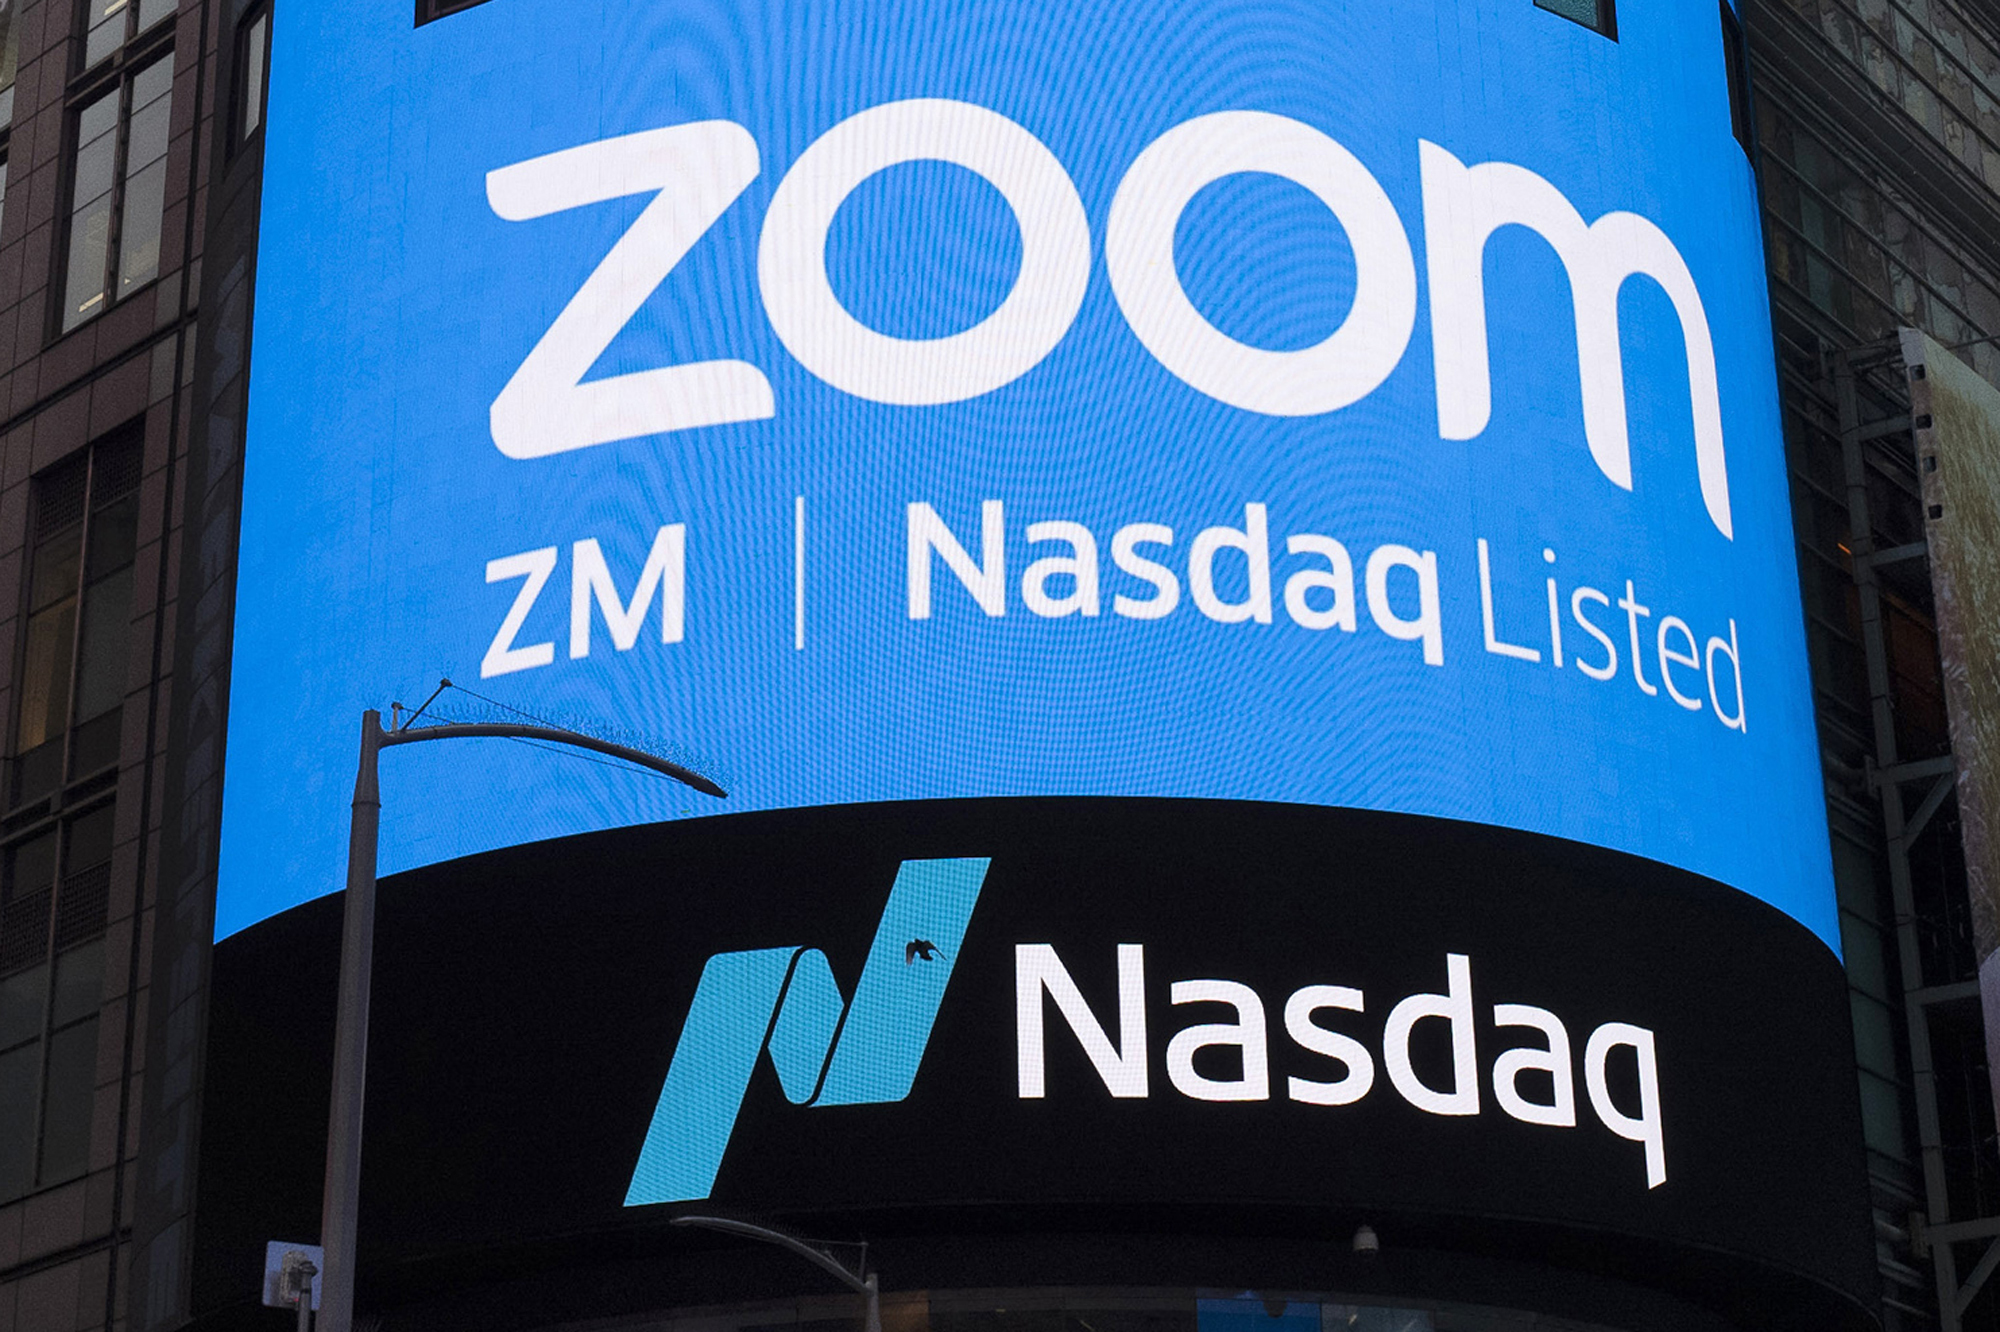 This April 18, 2019, file photo shows a sign for Zoom Video Communications ahead of their Nasdaq IPO in New York. (Mark Lennihan/Associated Press)